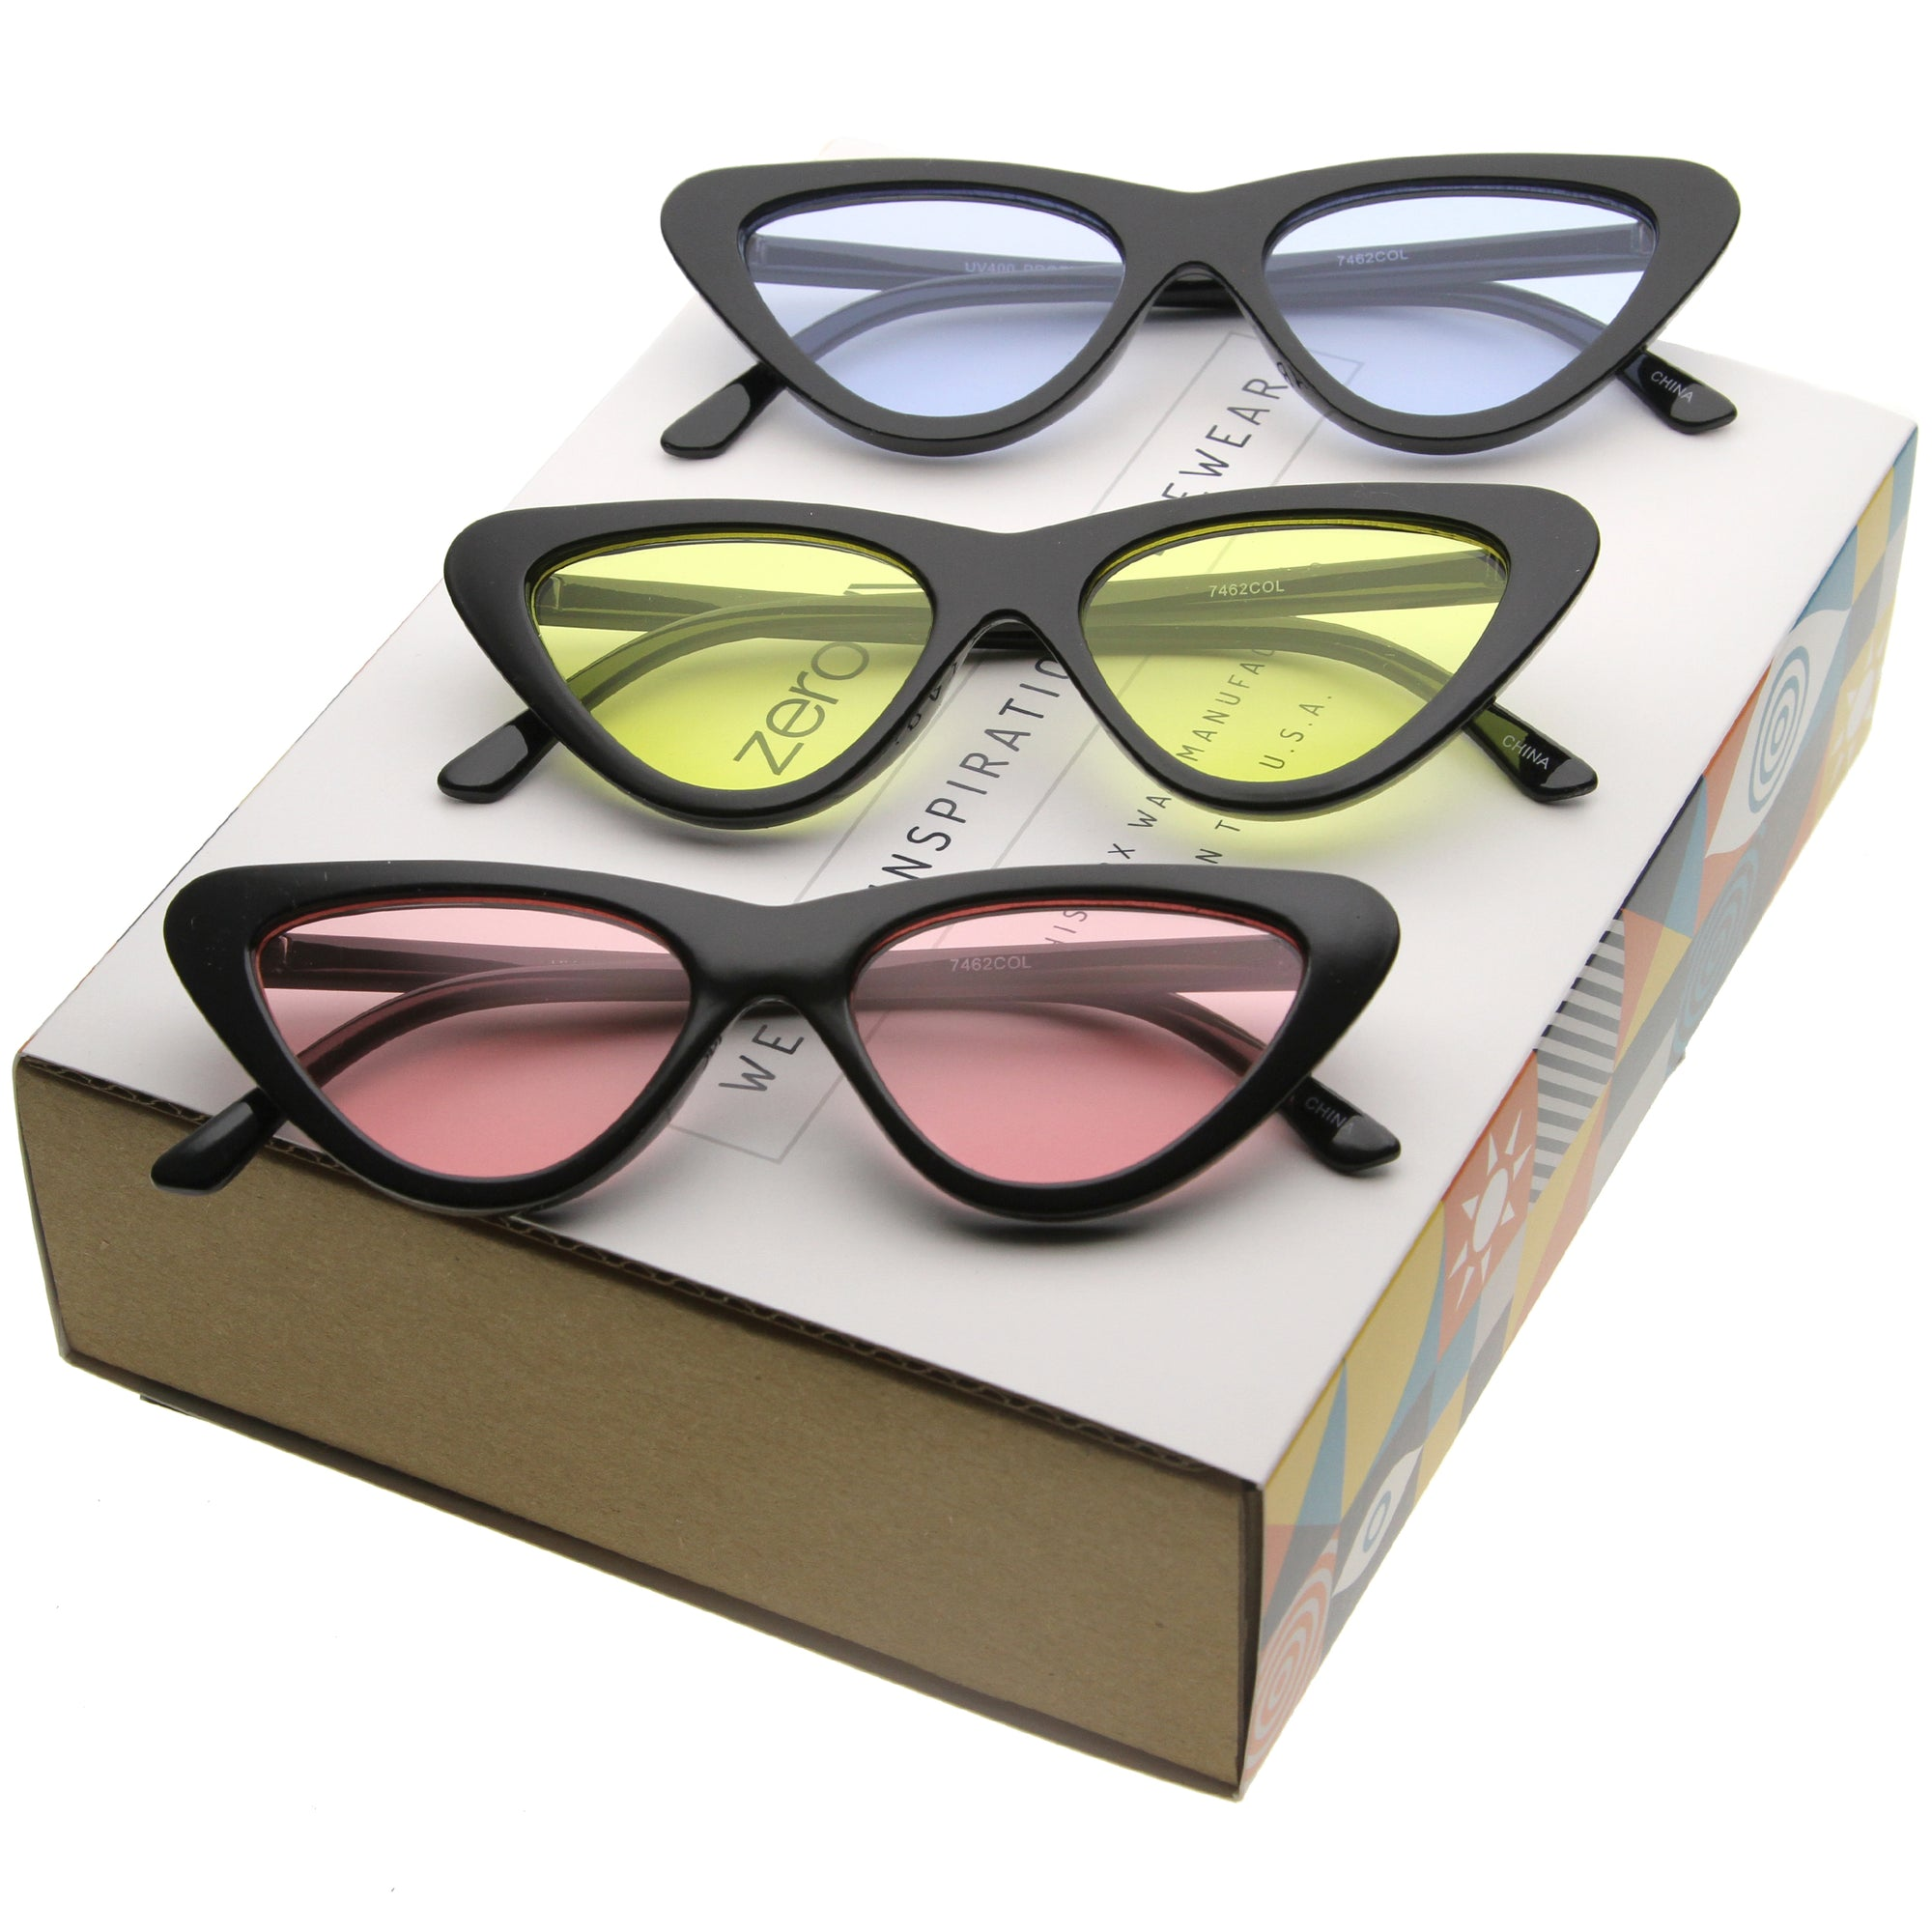 Women's Retro 1990's Color Tone Flat Lens Cat Eye Sunglasses C522 [Promo Box]